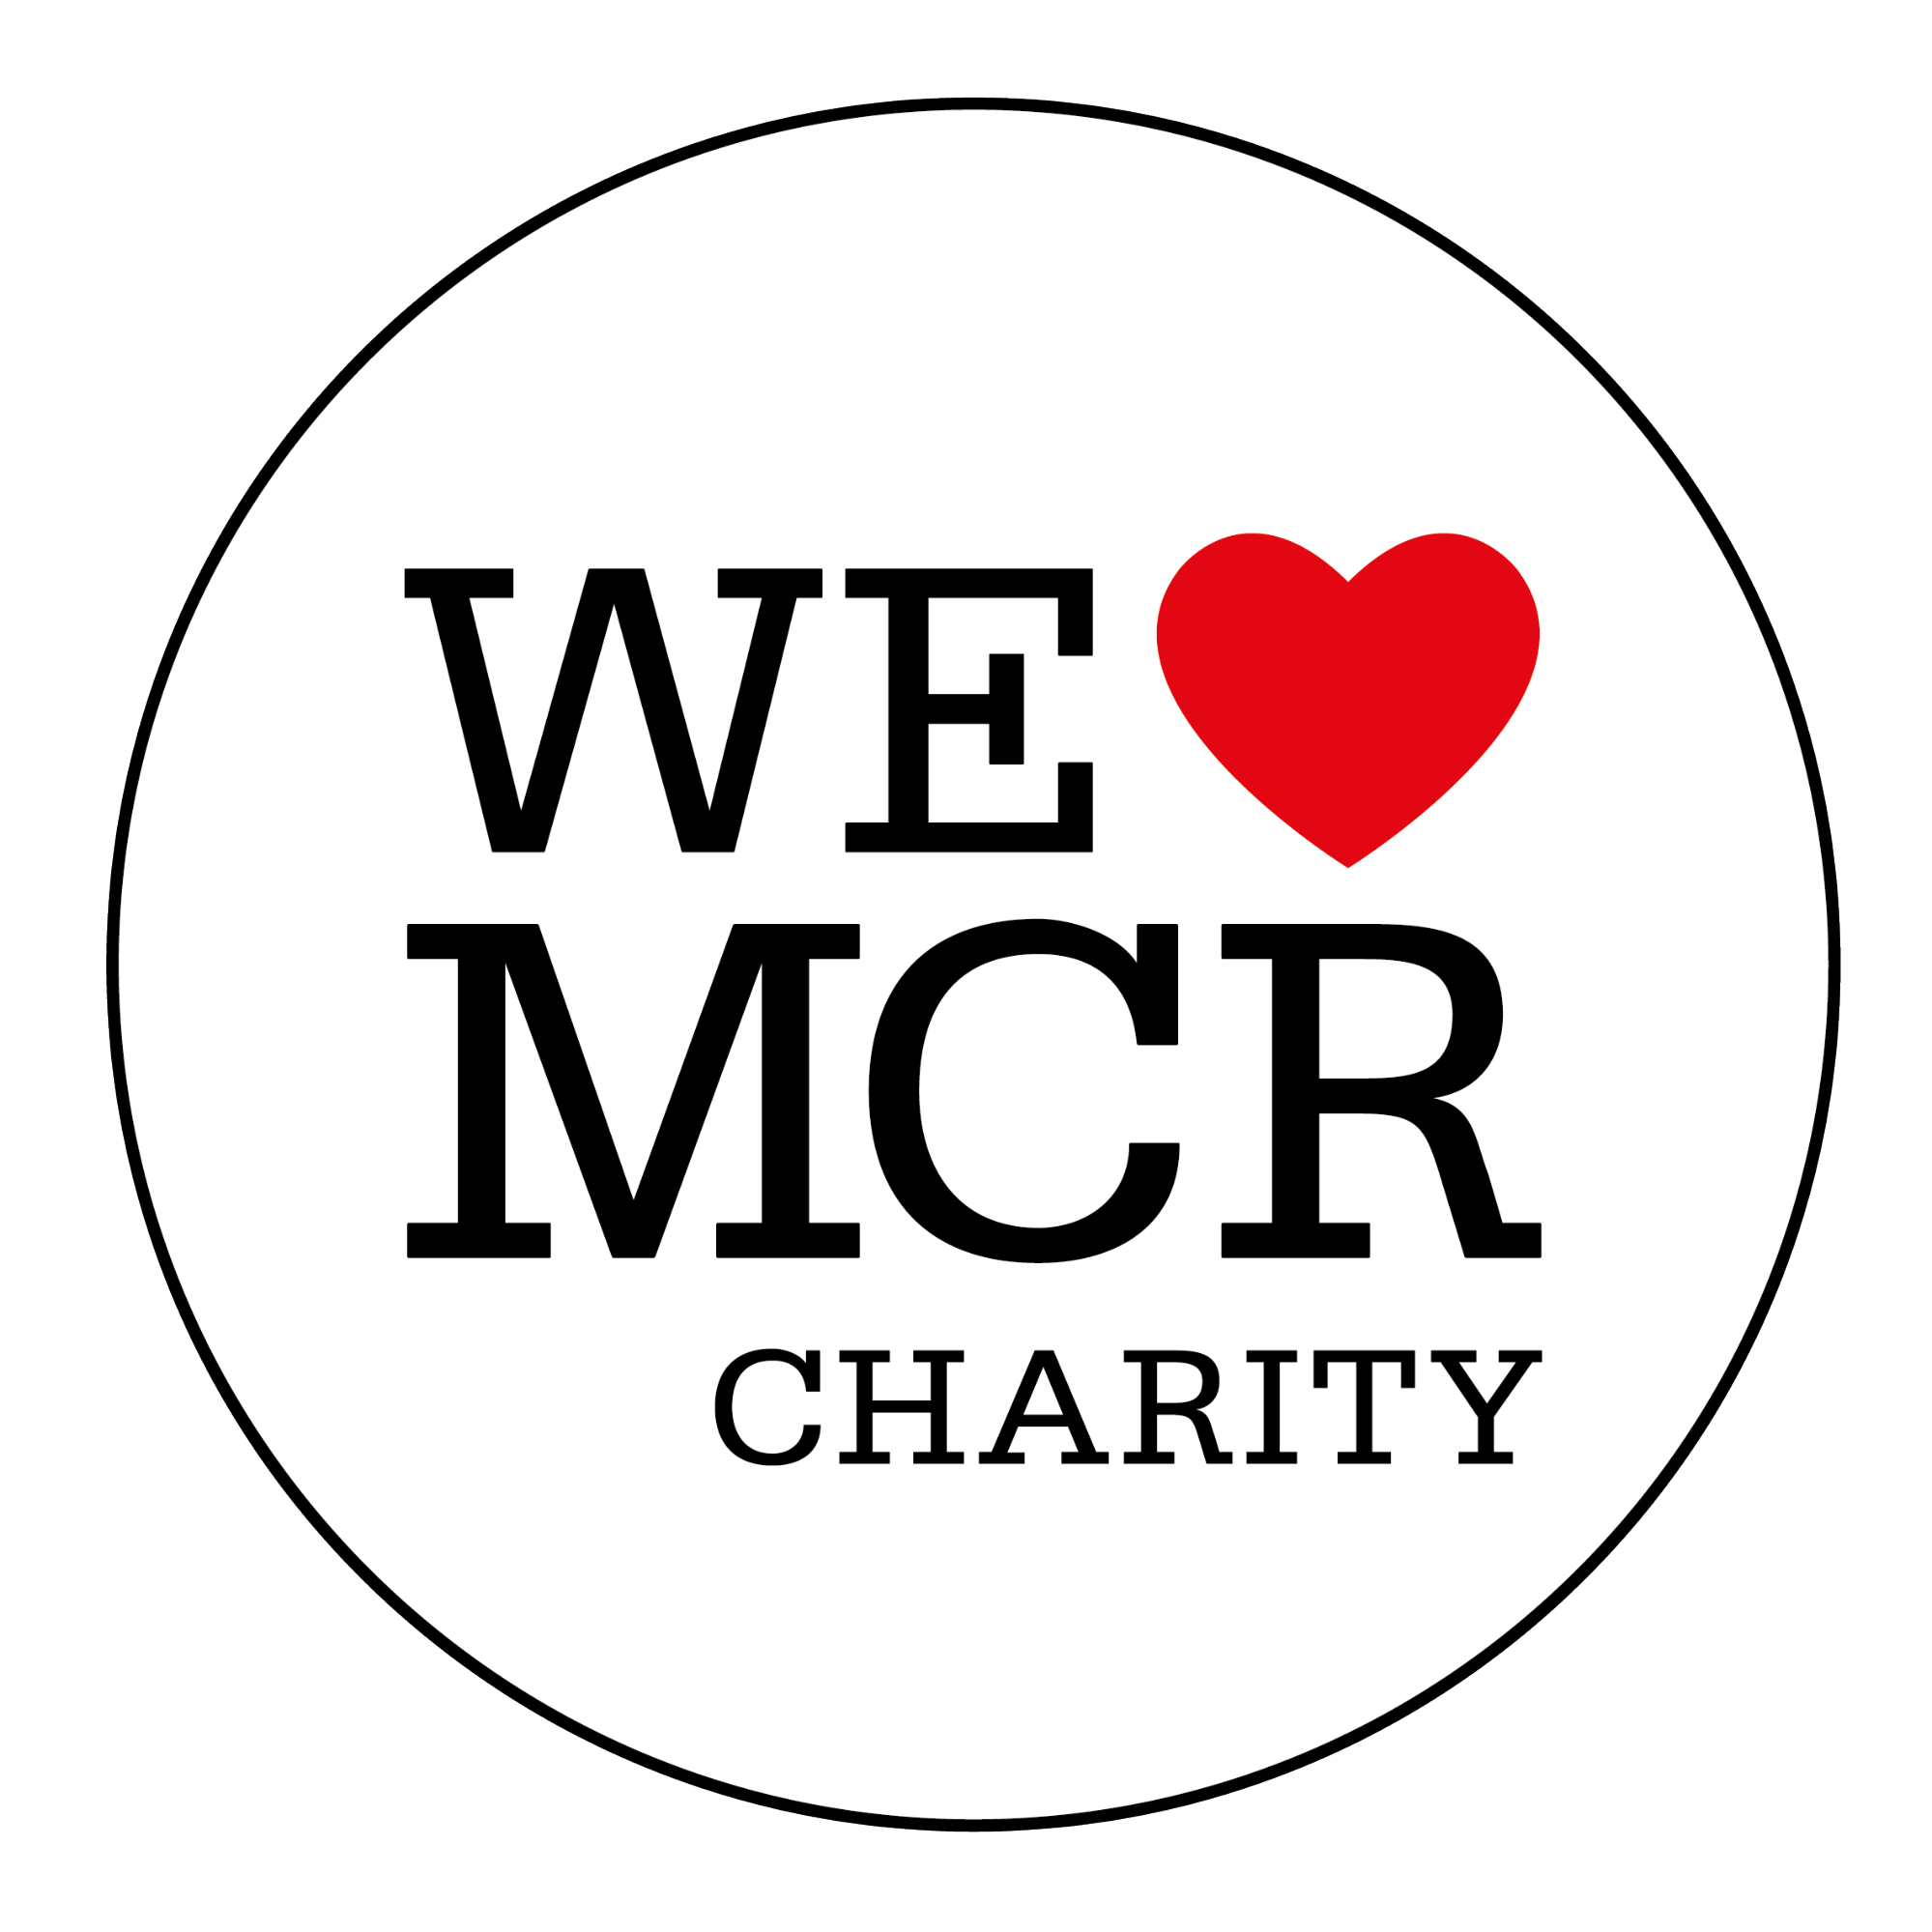 we-love-mcr-charity2